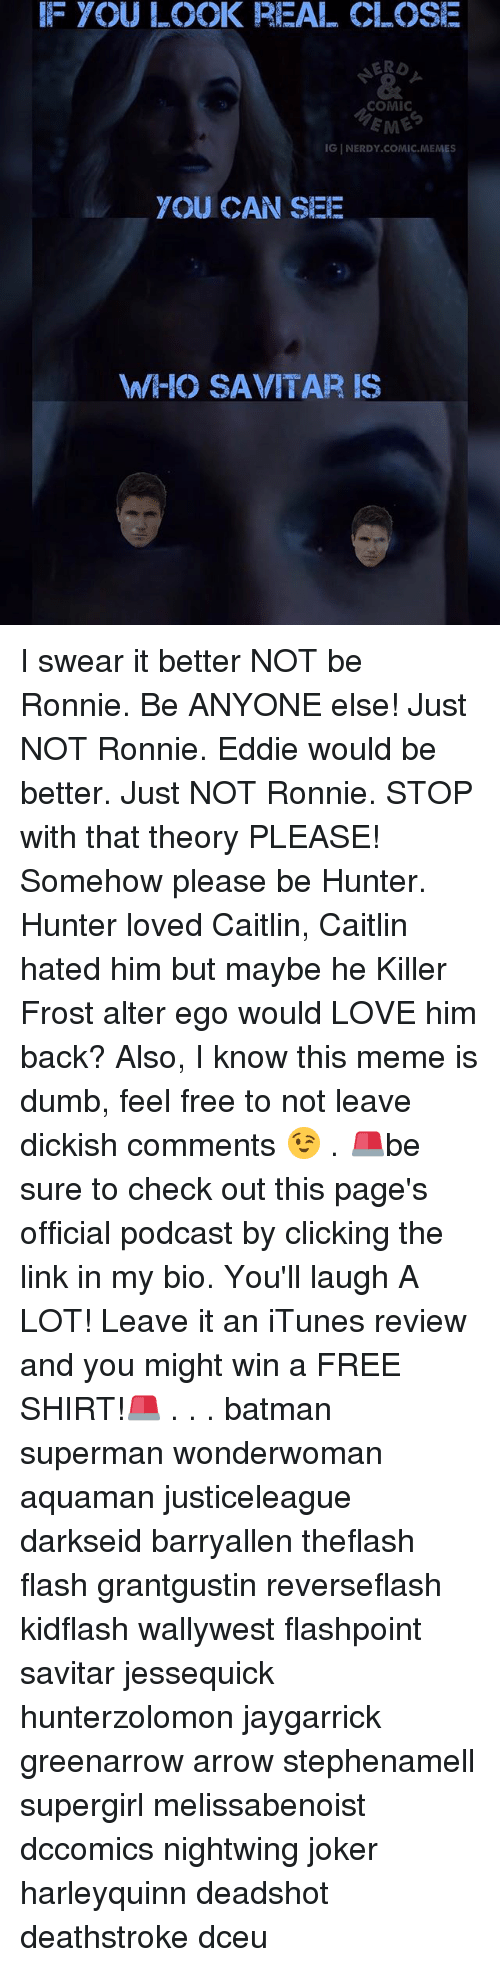 alter egos: IF YOU LOOK REAL CLOSE  ERD  COMIC  EME  IG NERDY COMIC MEMES  YOU CAN SEE  WHO SAVITAR IS I swear it better NOT be Ronnie. Be ANYONE else! Just NOT Ronnie. Eddie would be better. Just NOT Ronnie. STOP with that theory PLEASE! Somehow please be Hunter. Hunter loved Caitlin, Caitlin hated him but maybe he Killer Frost alter ego would LOVE him back? Also, I know this meme is dumb, feel free to not leave dickish comments 😉 . 🚨be sure to check out this page's official podcast by clicking the link in my bio. You'll laugh A LOT! Leave it an iTunes review and you might win a FREE SHIRT!🚨 . . . batman superman wonderwoman aquaman justiceleague darkseid barryallen theflash flash grantgustin reverseflash kidflash wallywest flashpoint savitar jessequick hunterzolomon jaygarrick greenarrow arrow stephenamell supergirl melissabenoist dccomics nightwing joker harleyquinn deadshot deathstroke dceu